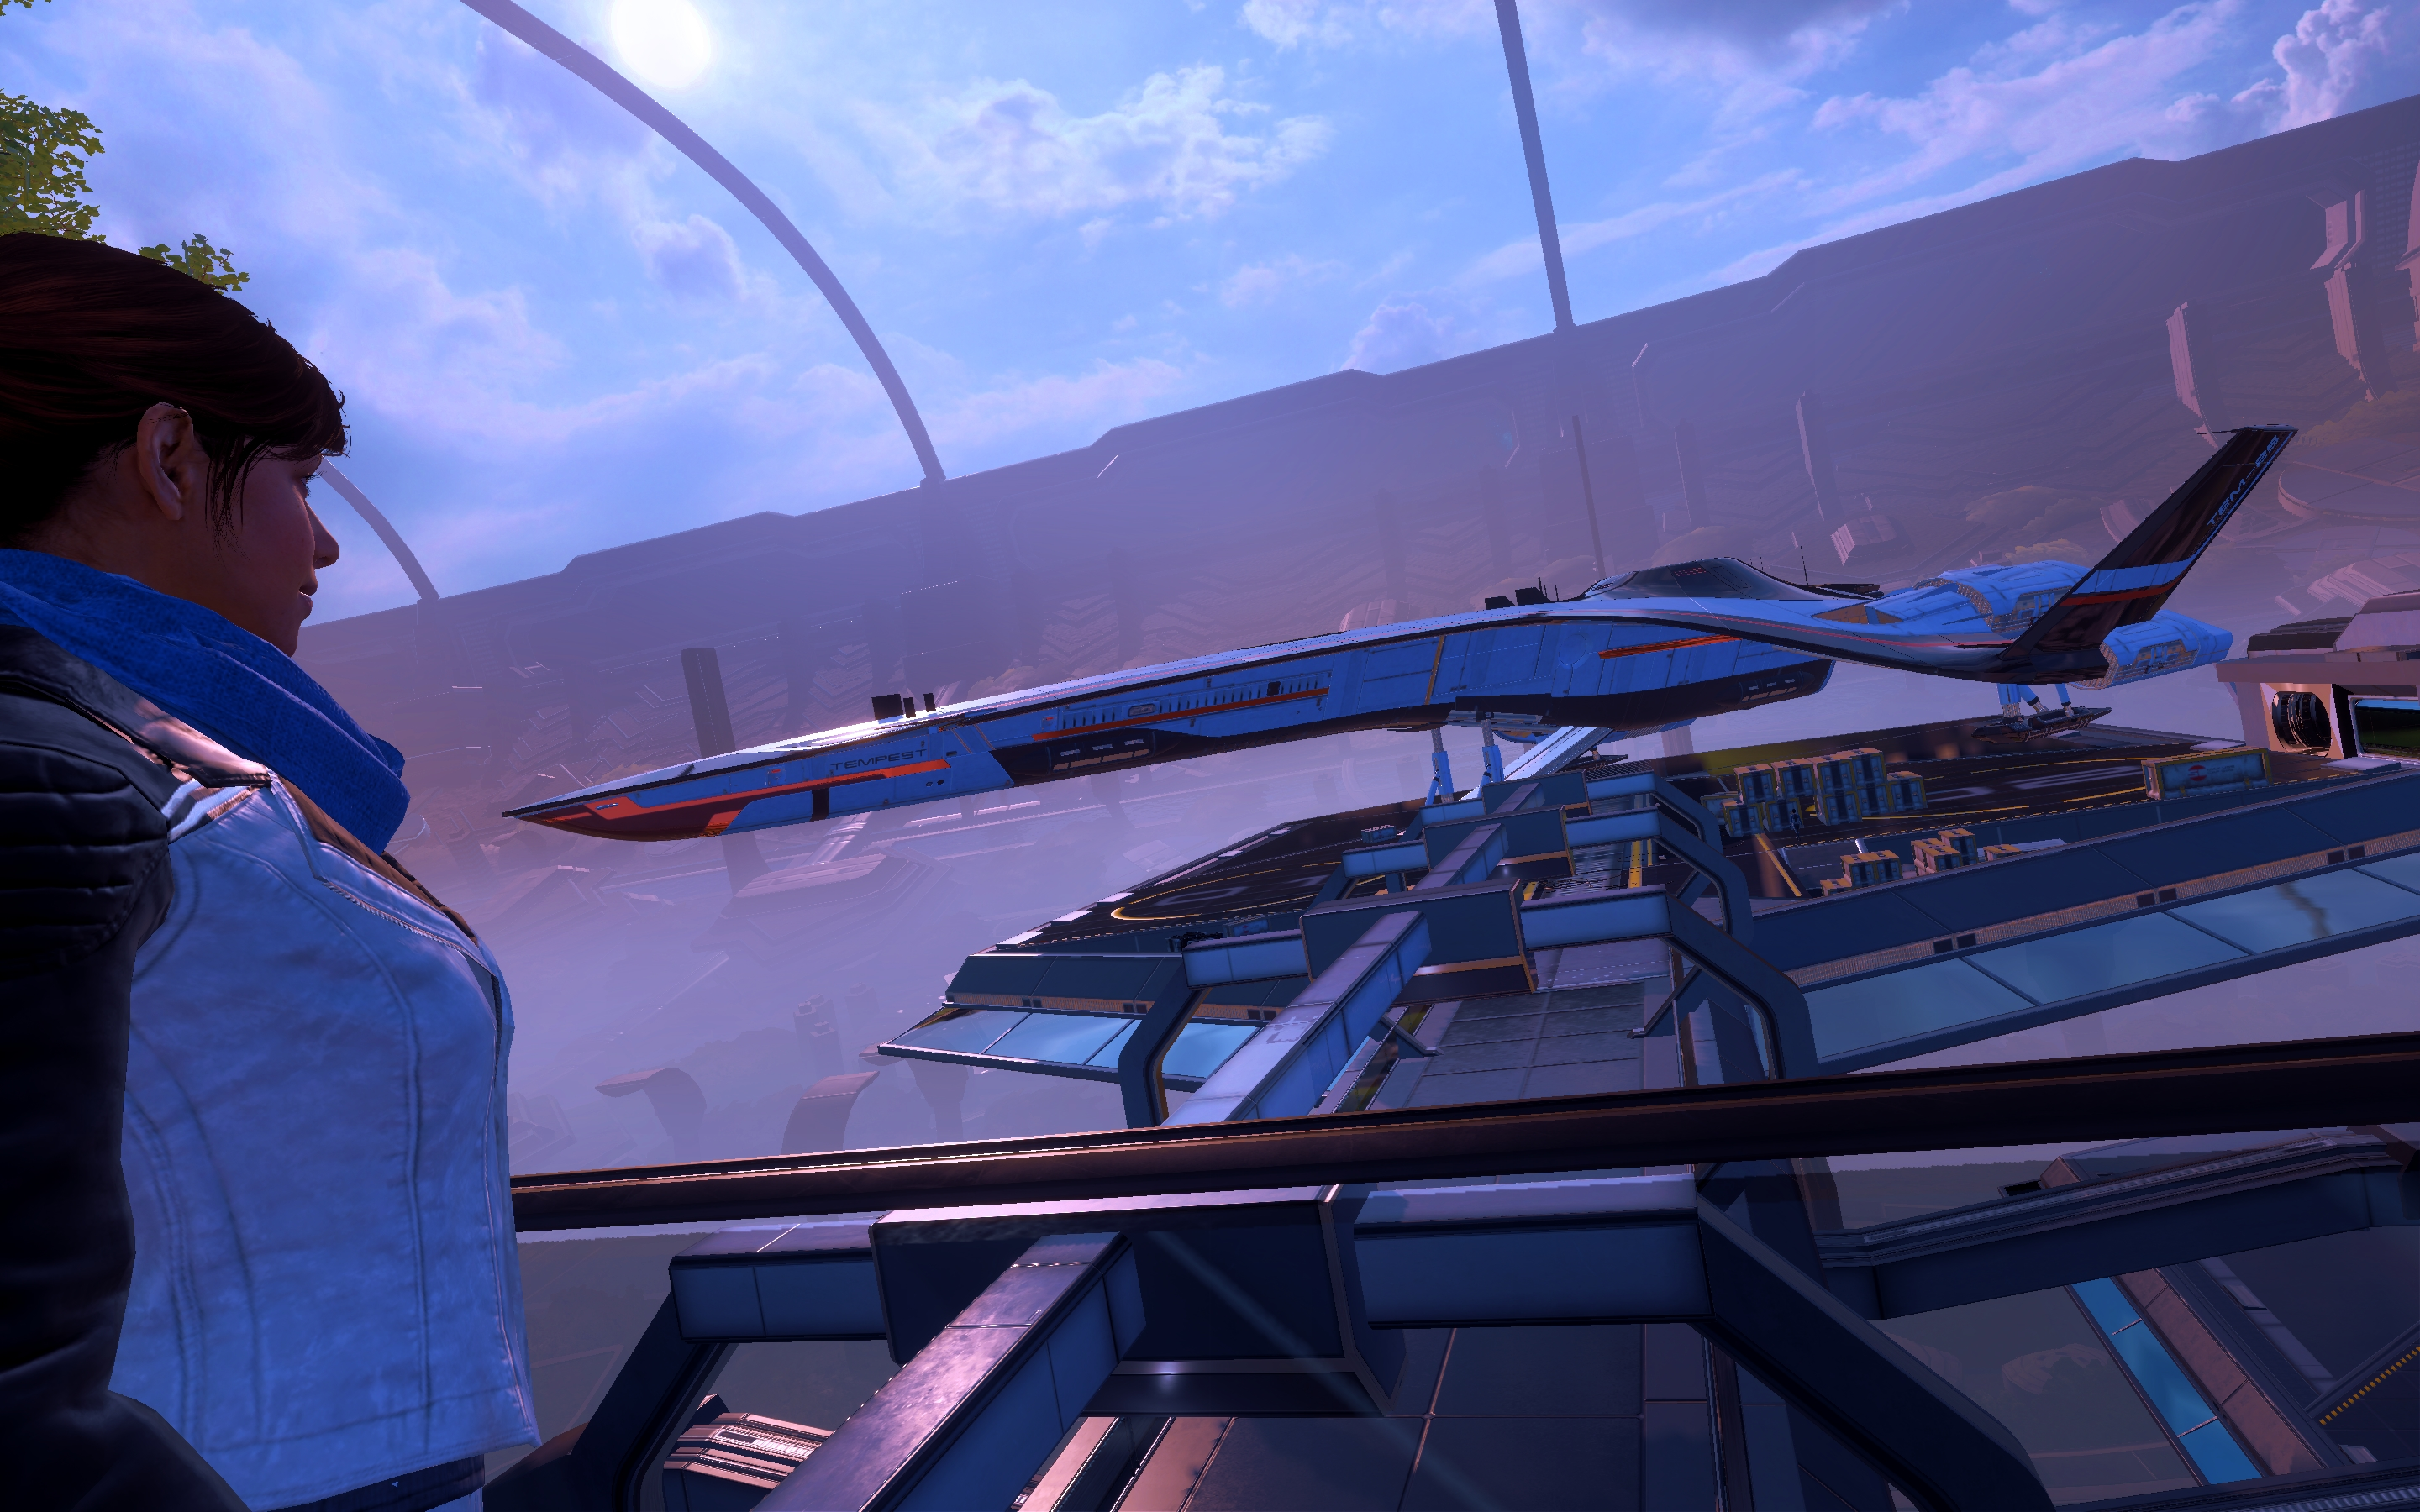 Mass Effect Andromeda Super-Resolution 2017.04.01 - 14.48.09.16.jpg - Mass Effect: Andromeda